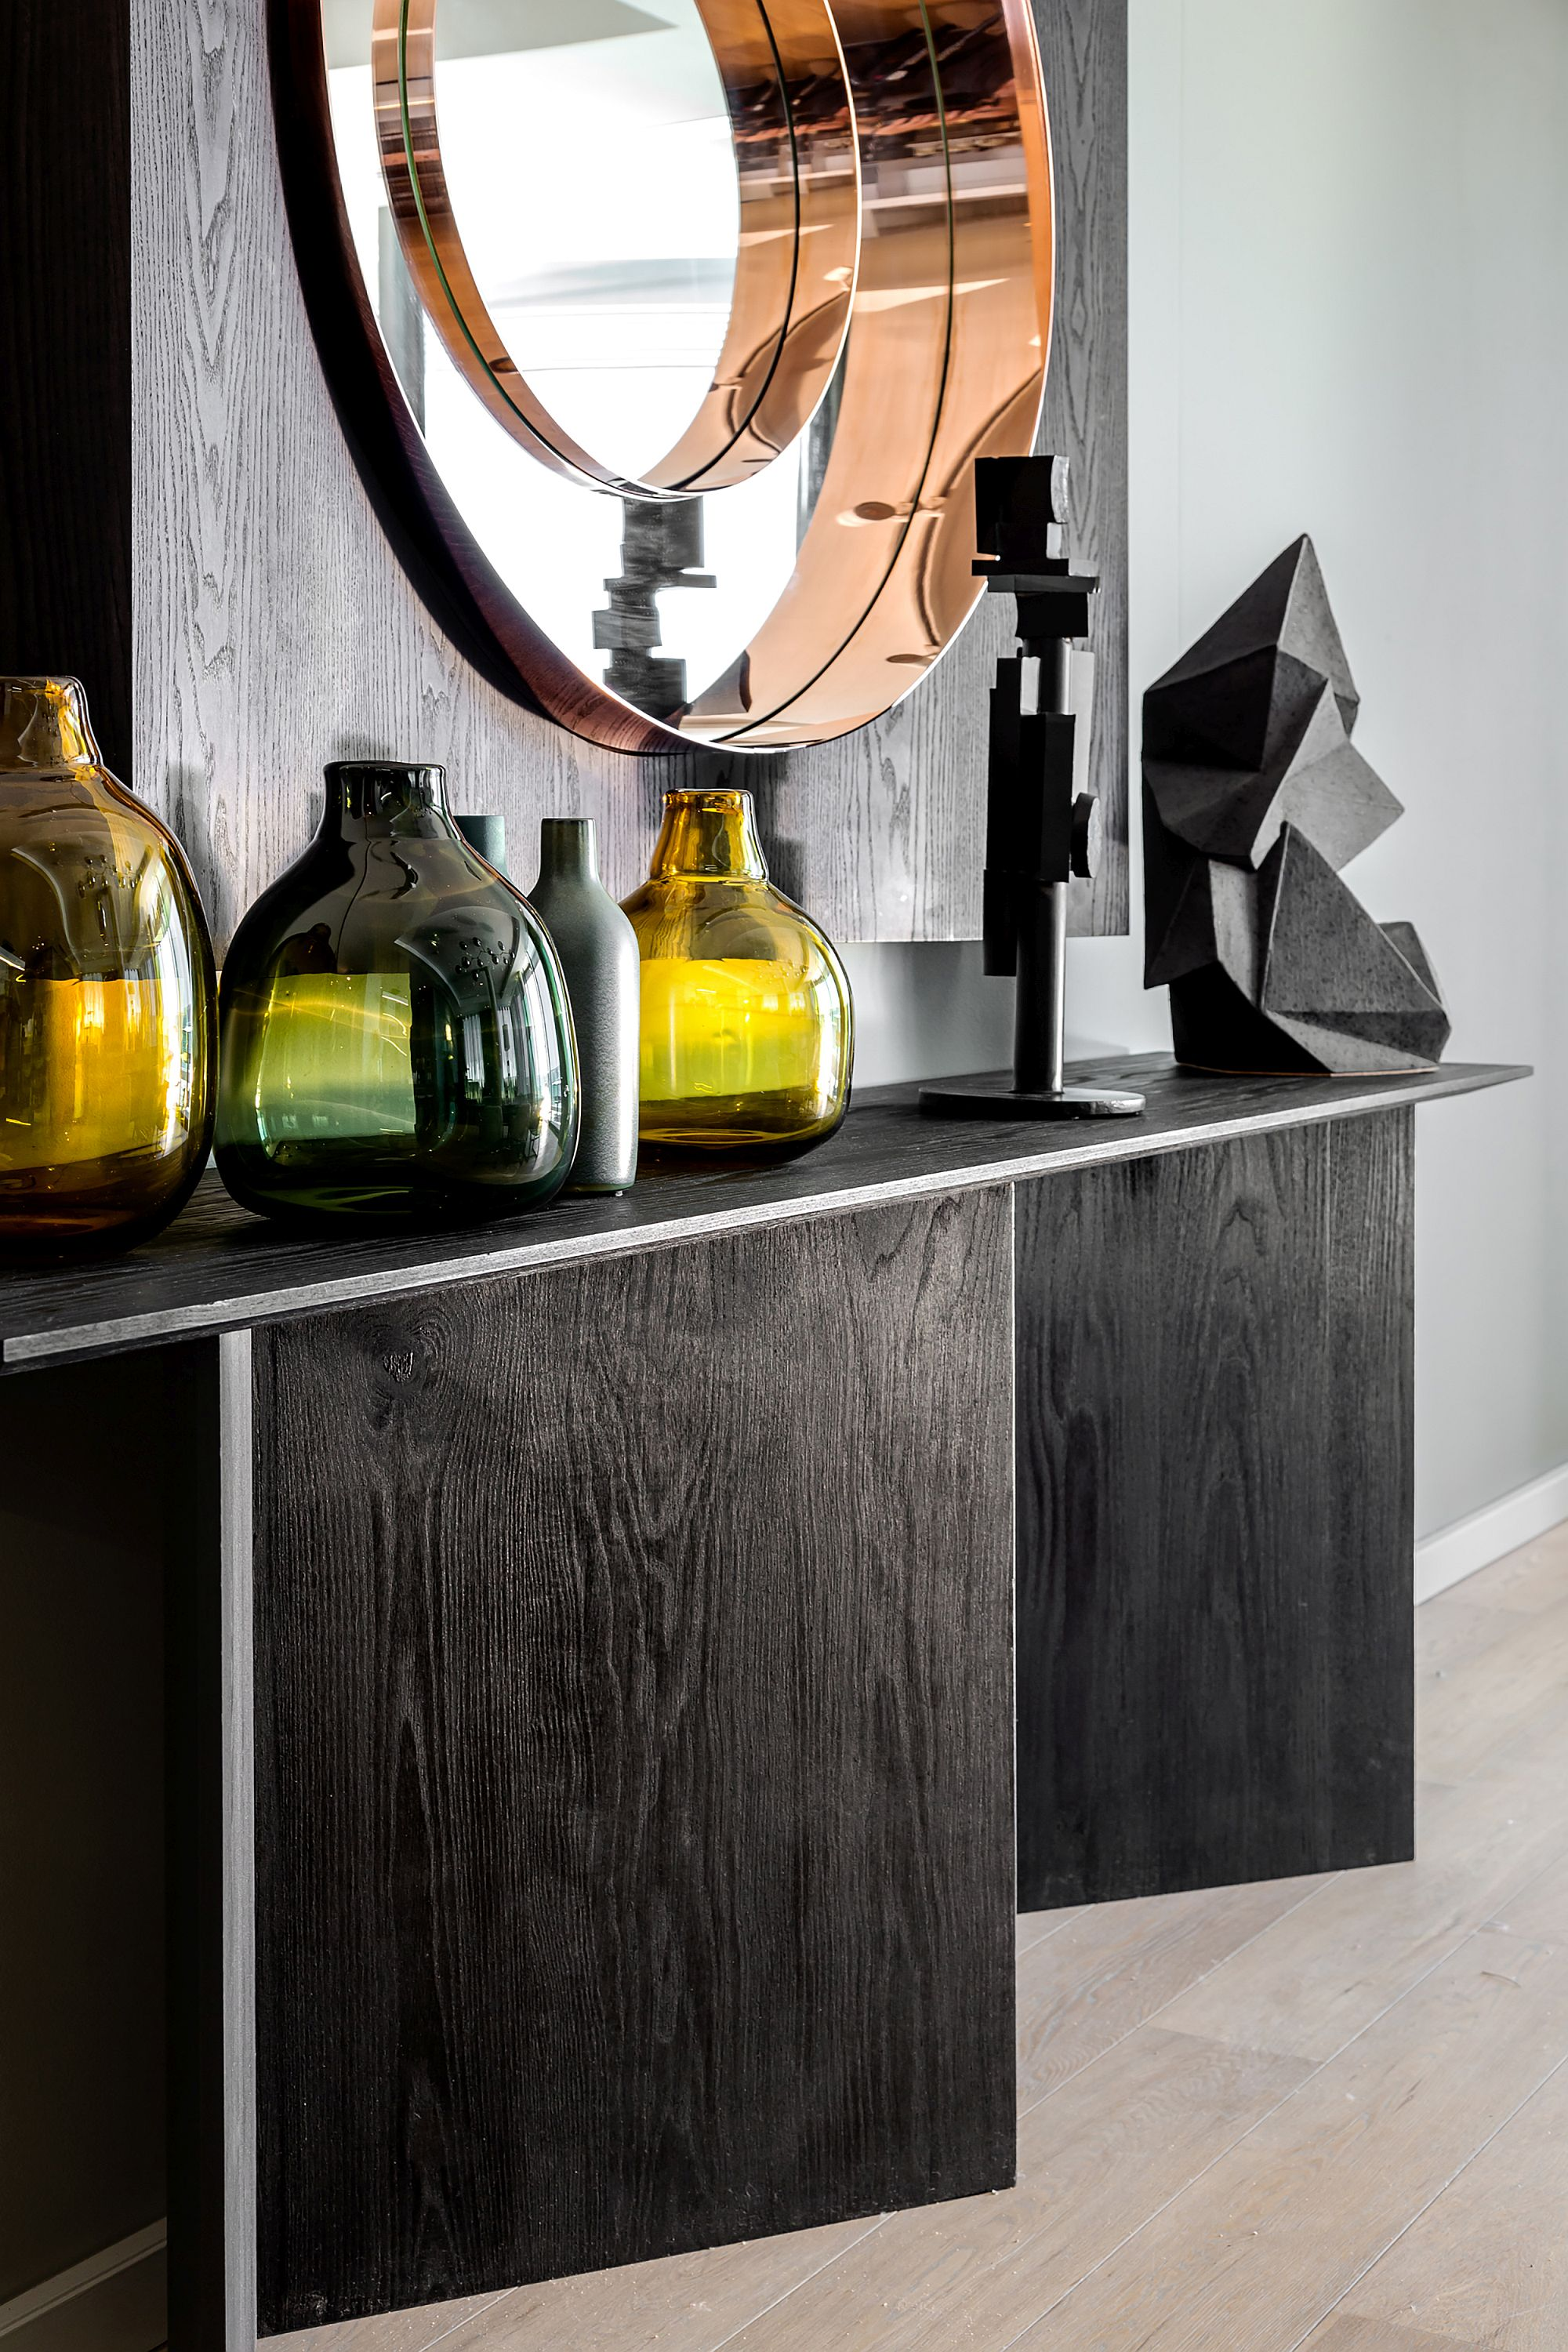 Exquisite-use-of-vases-to-craete-a-display-that-is-modern-and-attractive